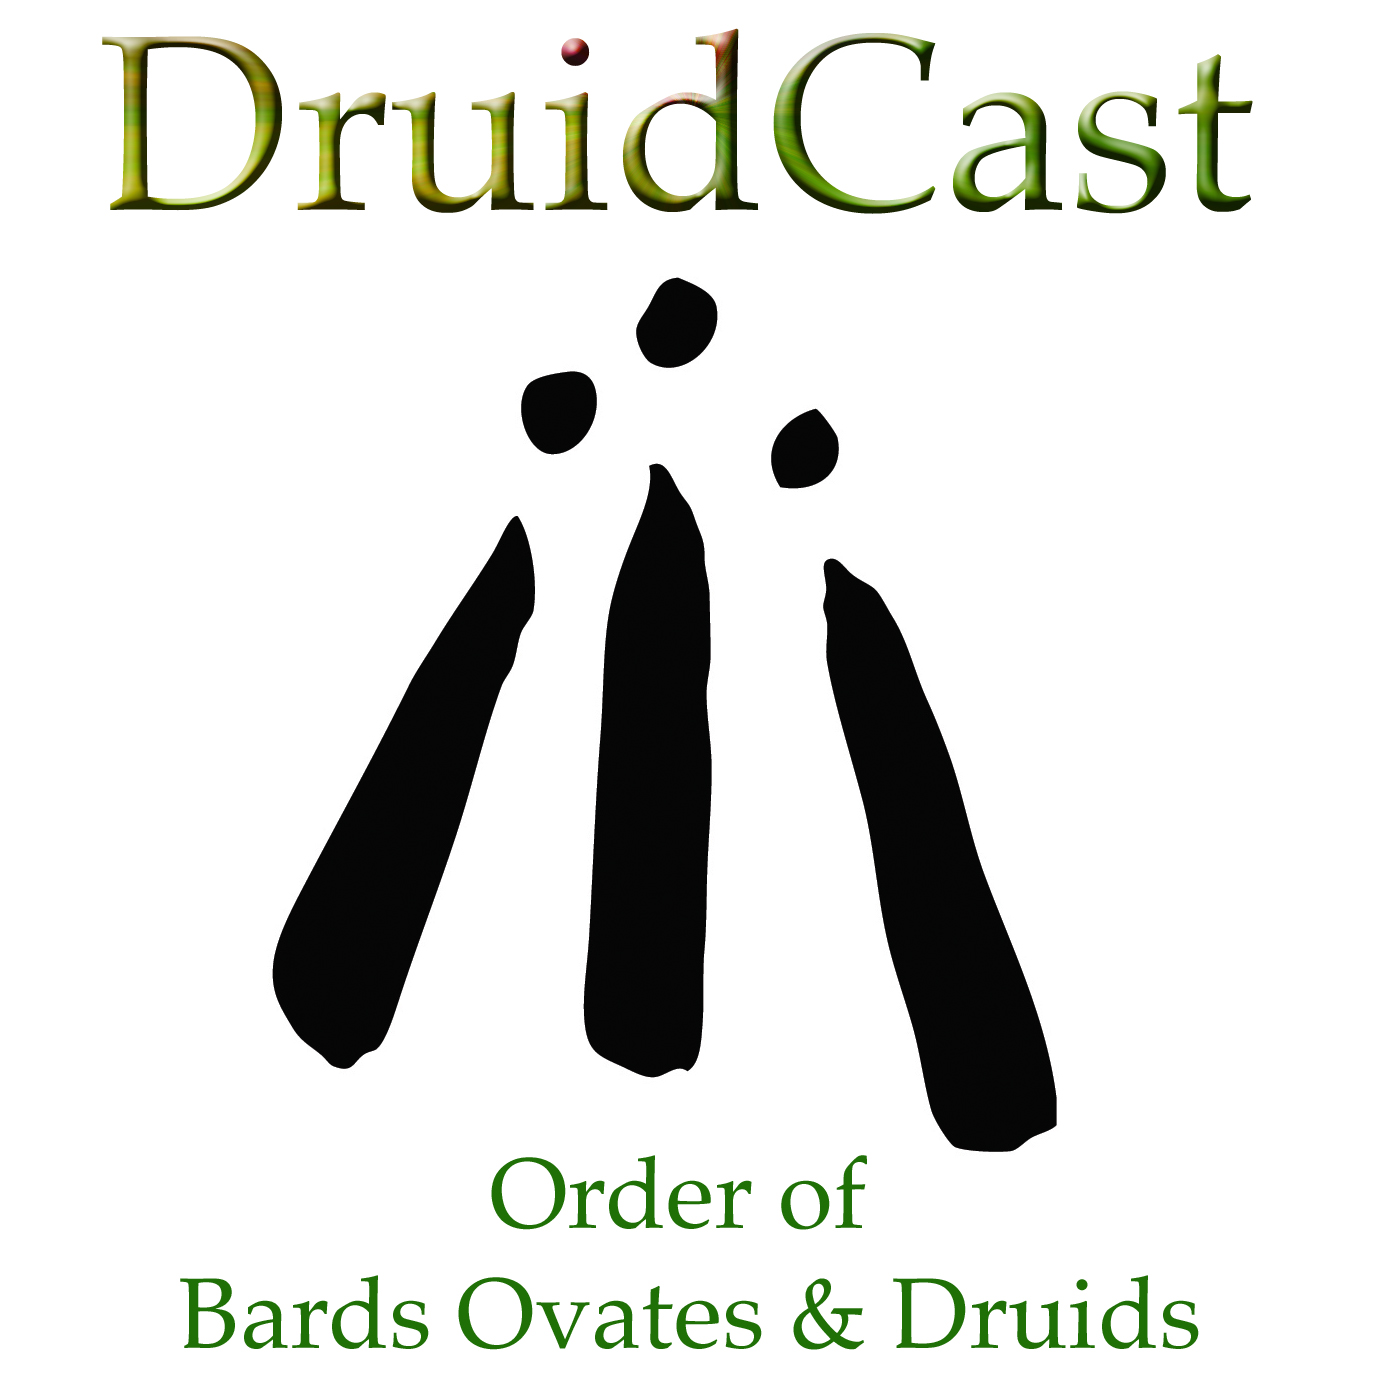 Druidcast - The Druid Podcast